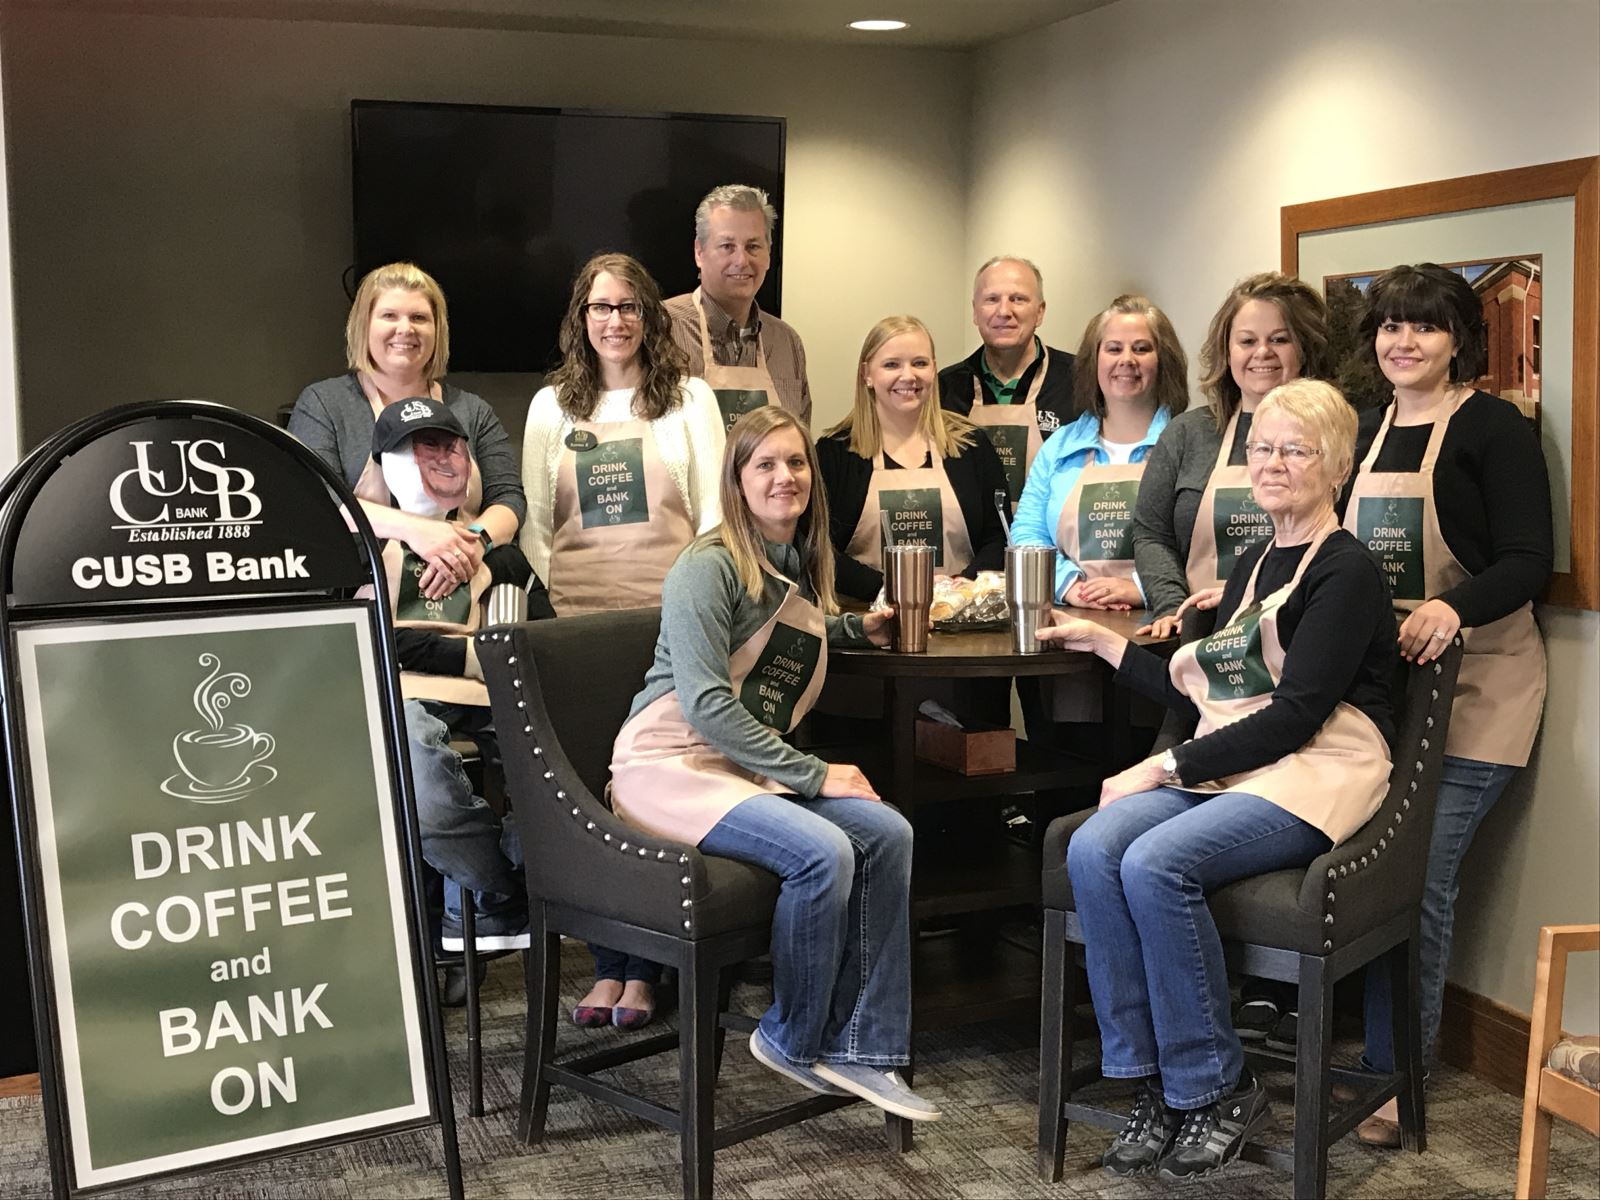 We have a latte' of FREE at CUSB Bank!